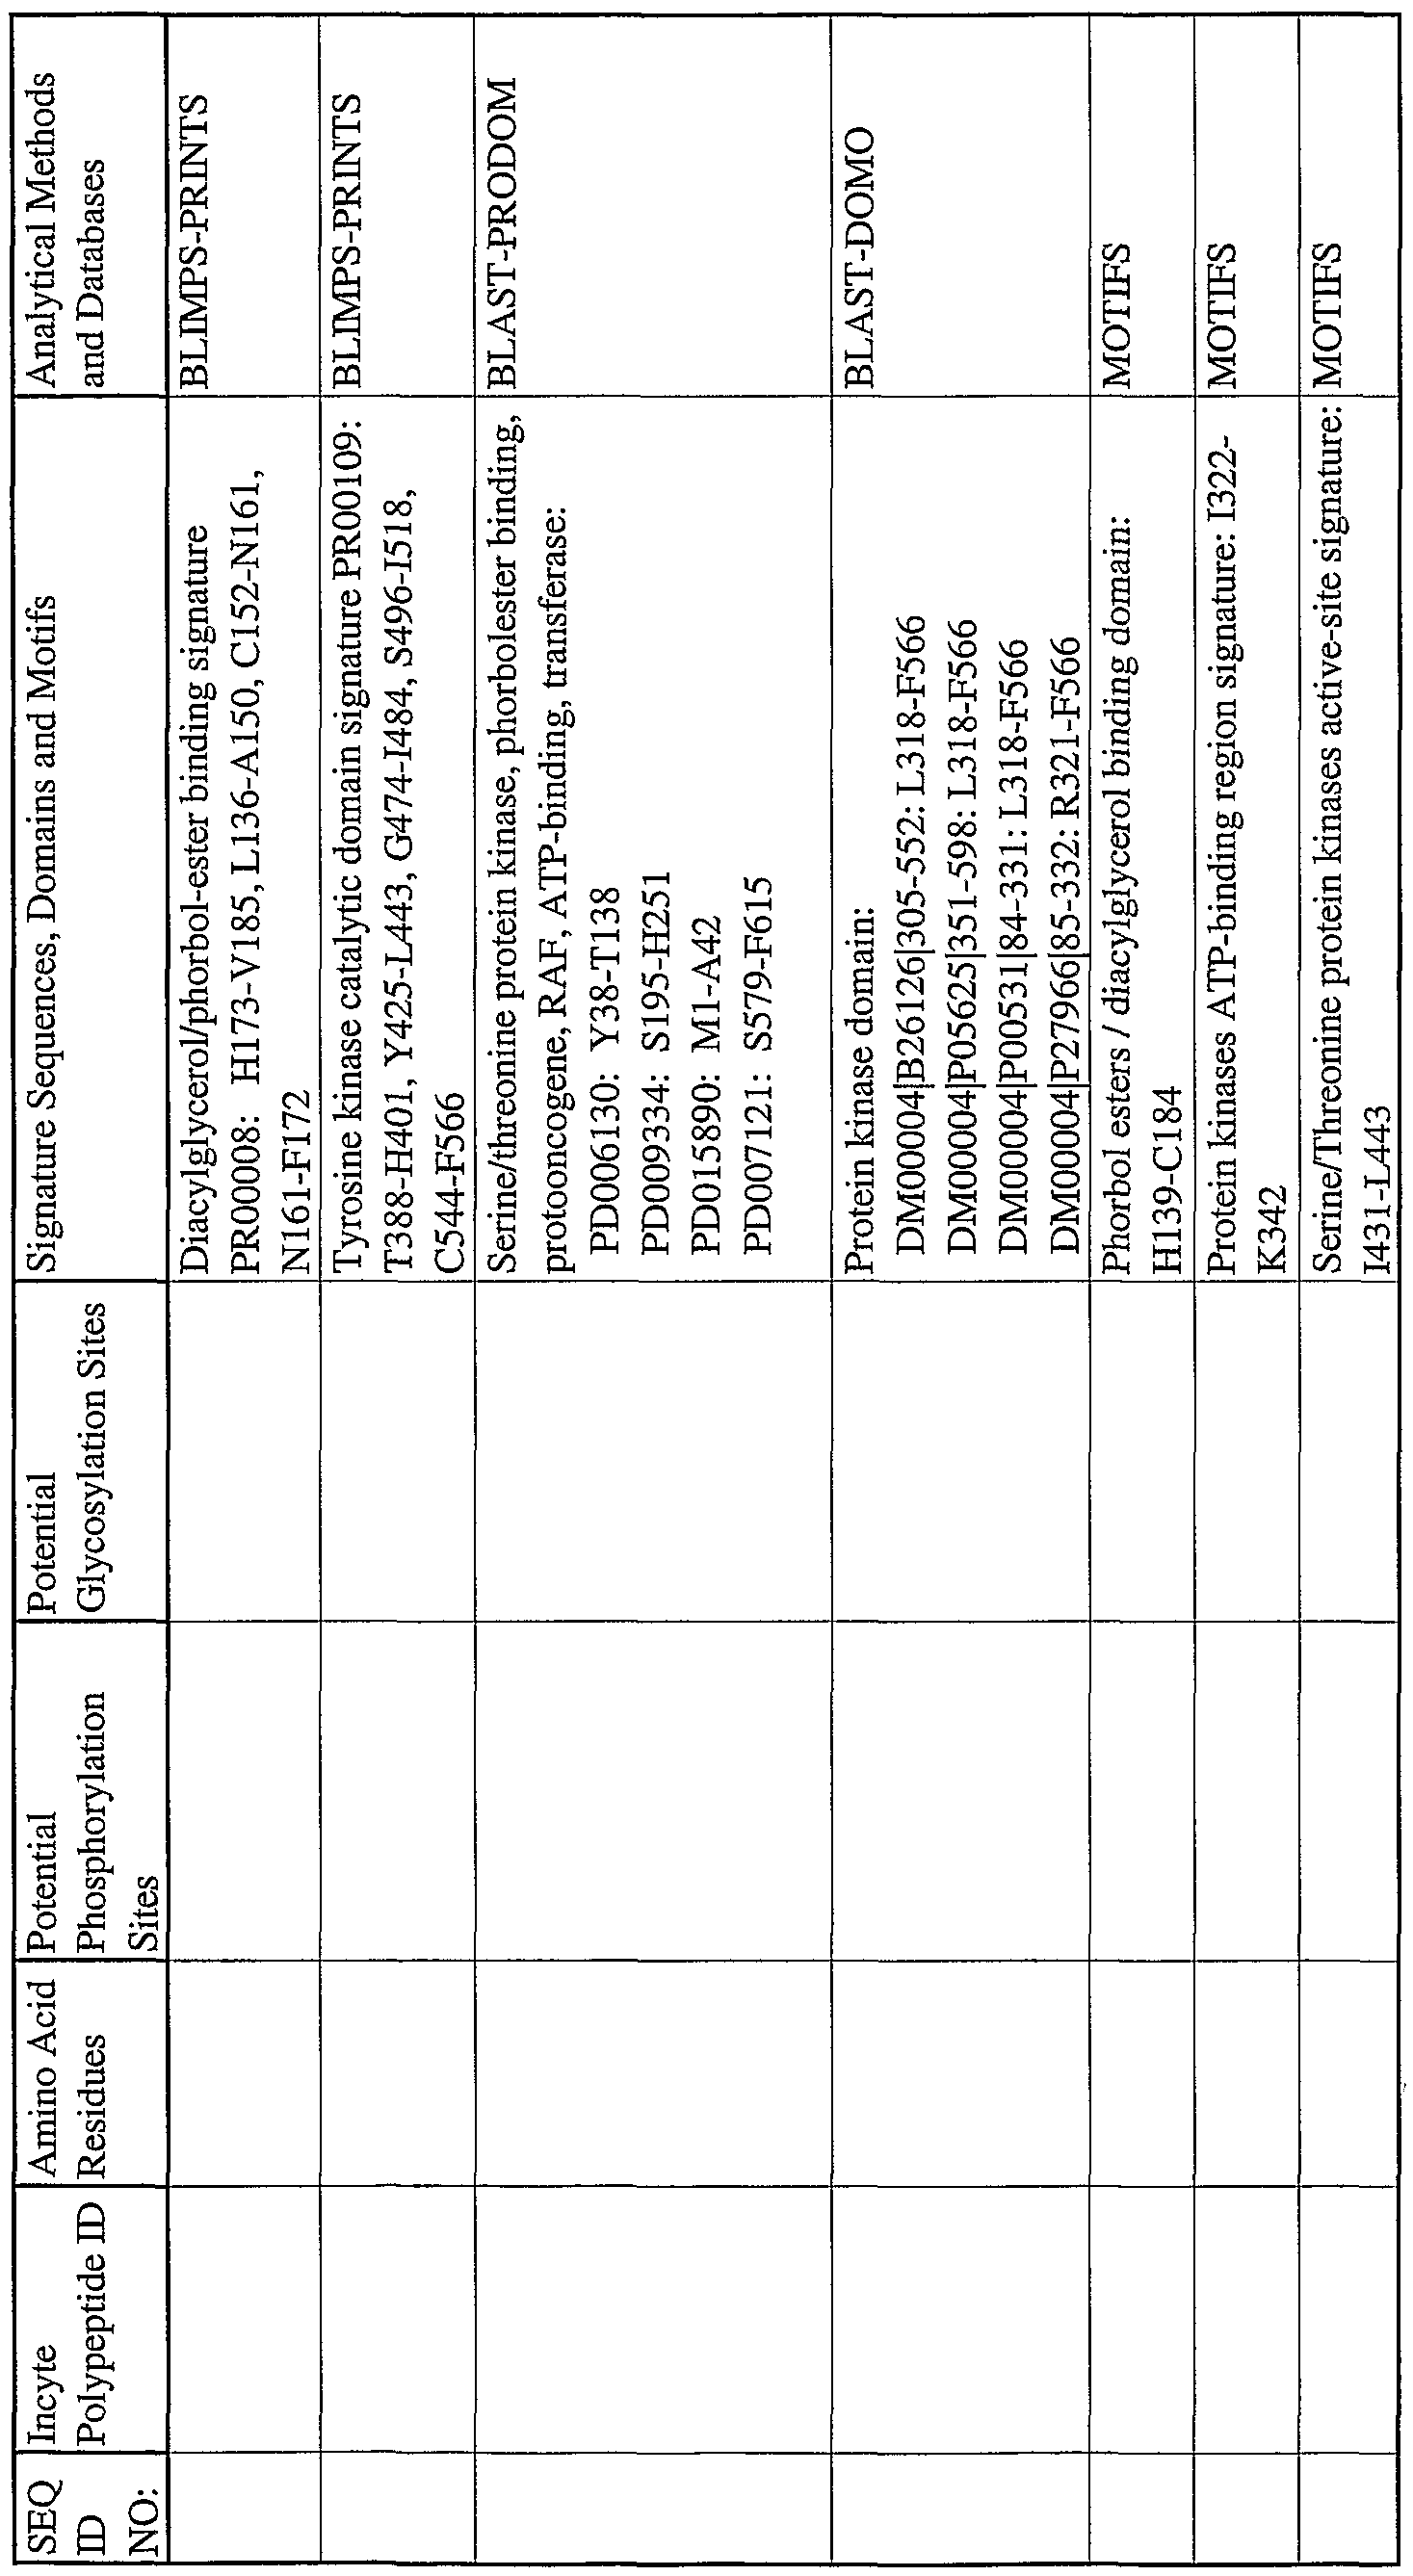 WO2003012065A2 - Kinases and phosphatases - Google Patents